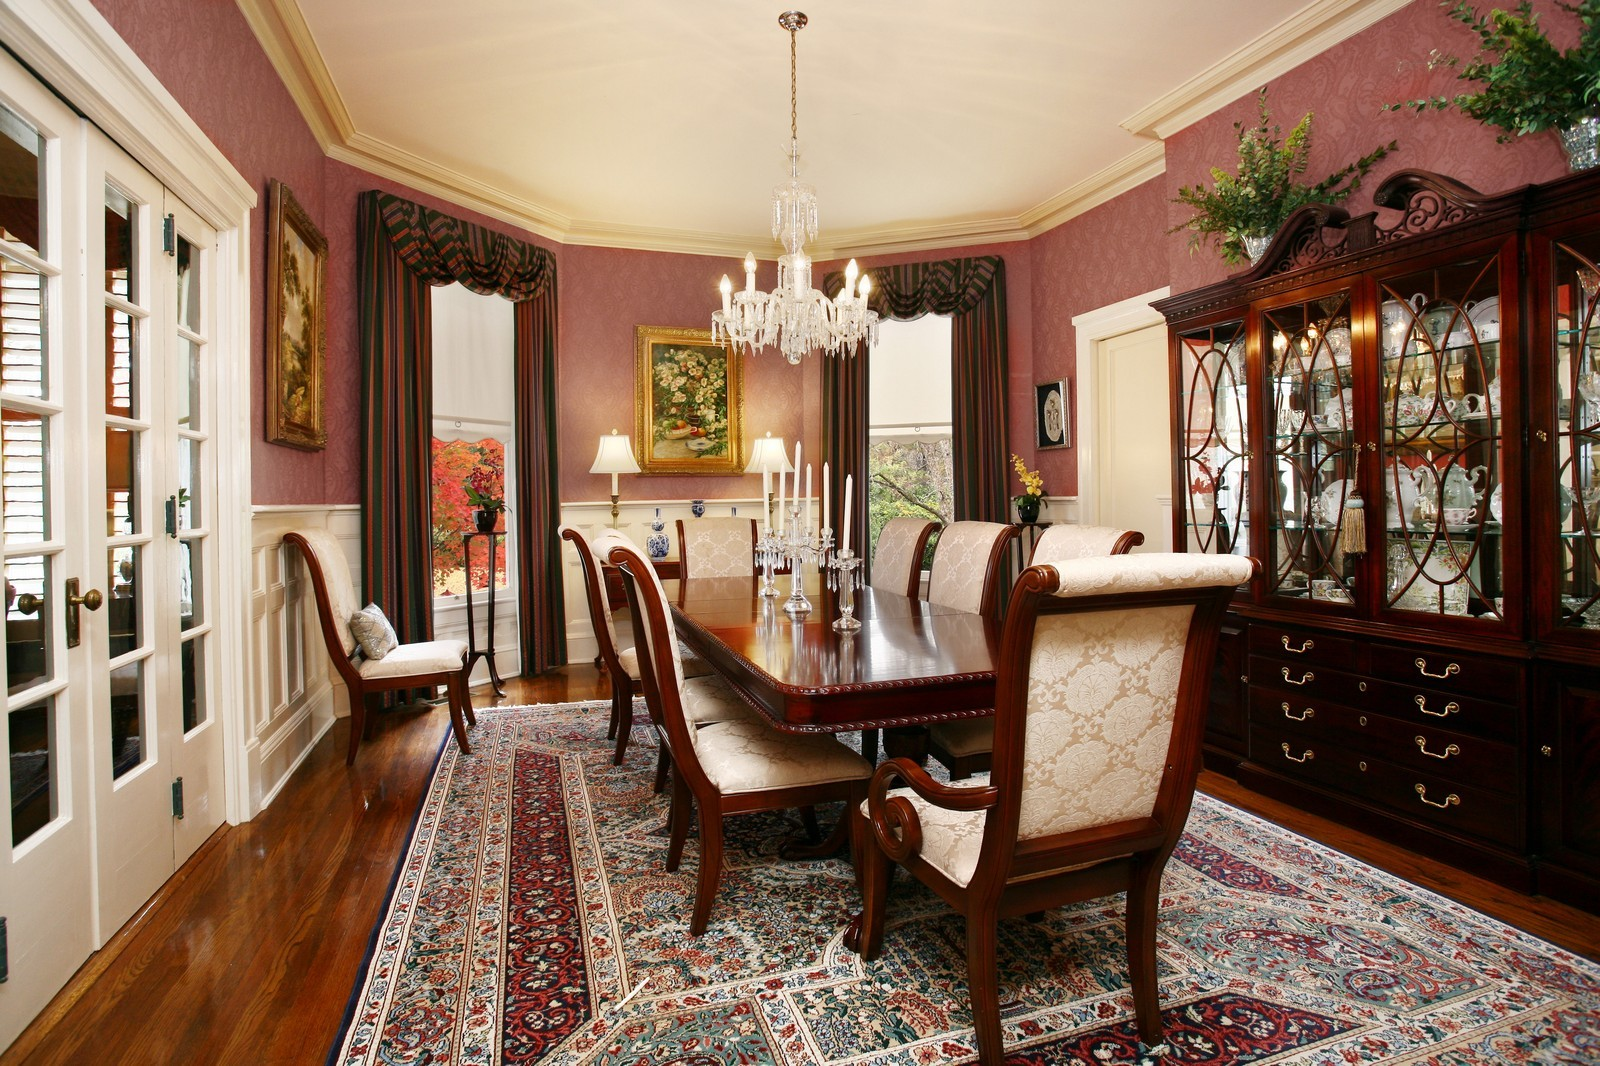 Real Estate Photography - 414 N 14th St, Lanett, AL, 36863 - Dining Room